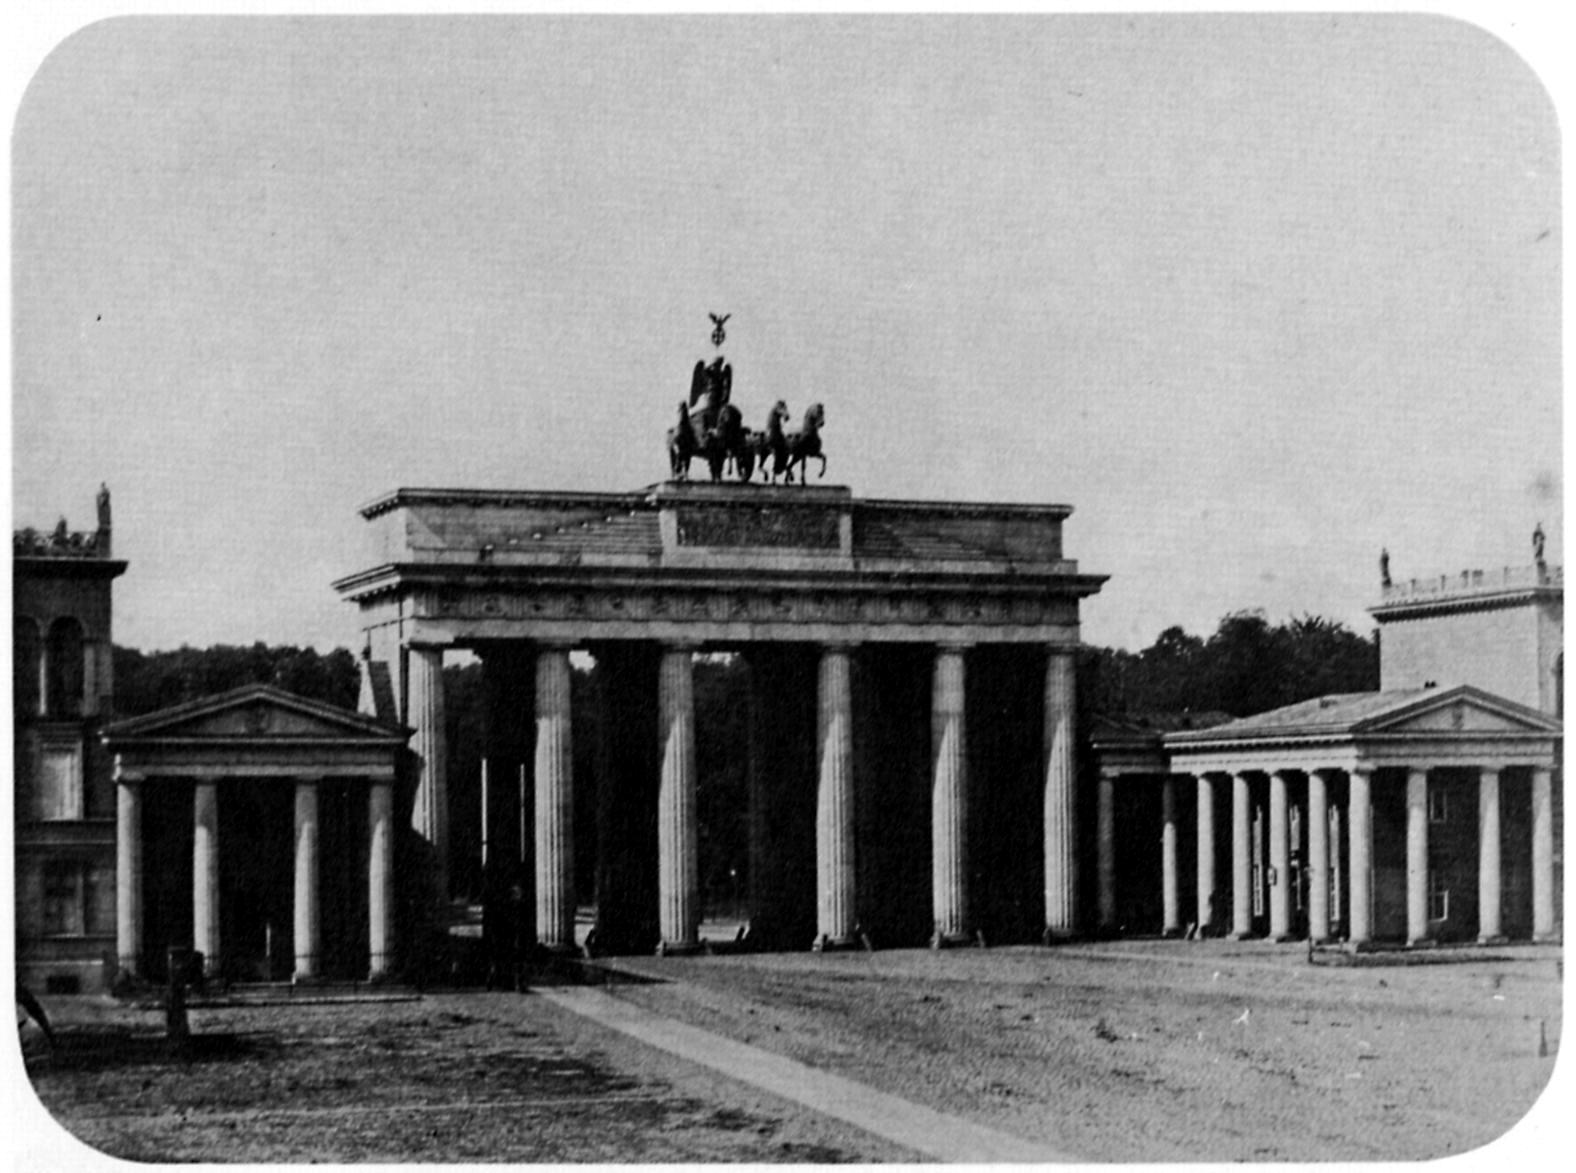 Brandenburger Tor by L. Ahrendts 1855 (01).jpg